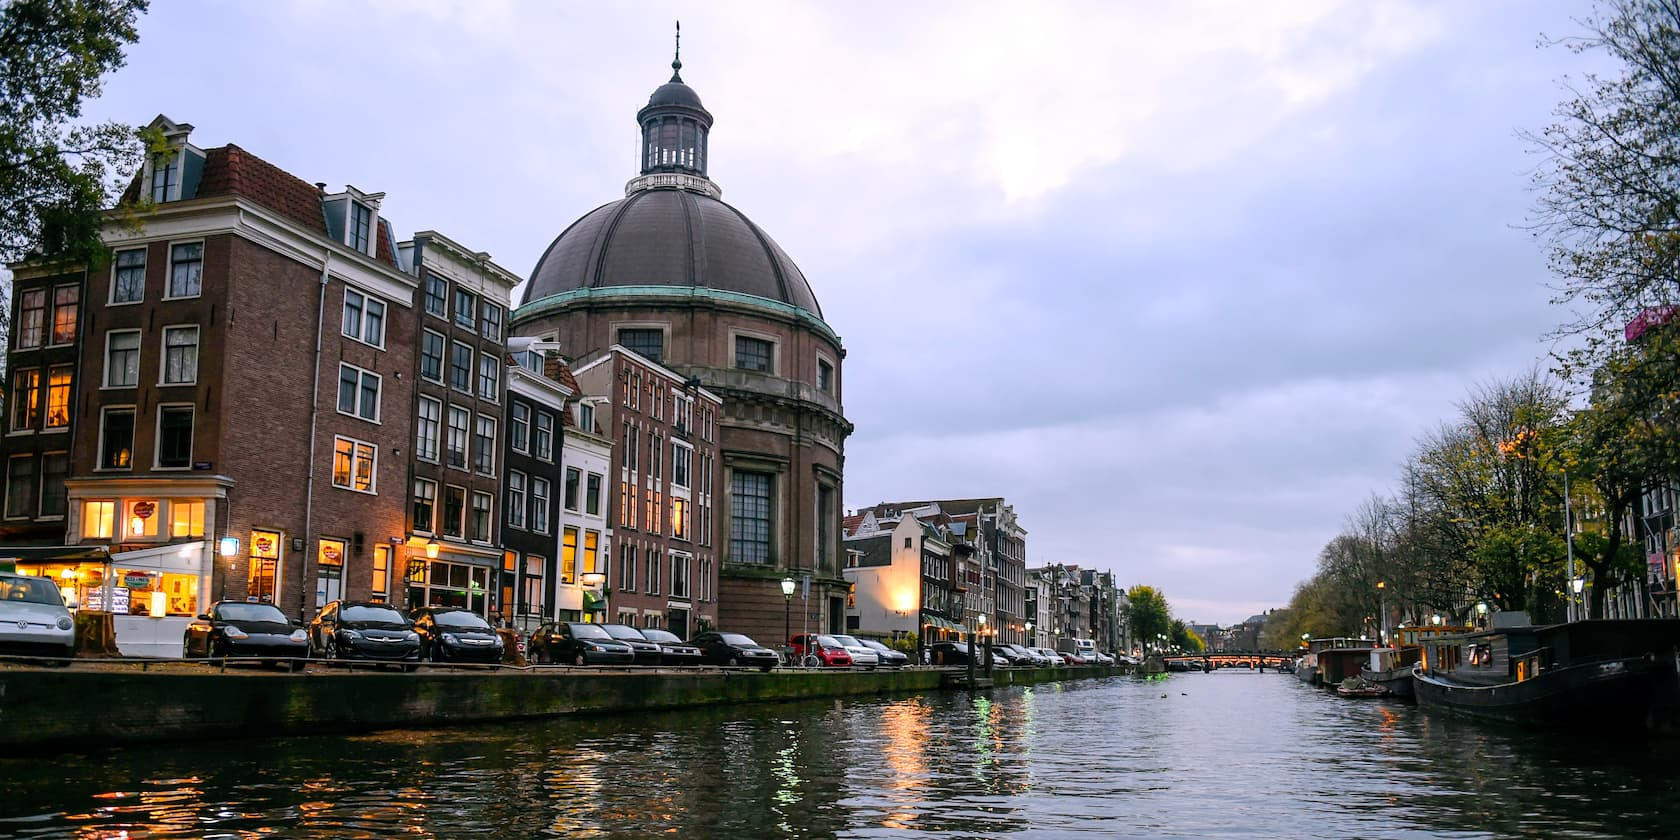 A picturesque view of Amsterdam, with a domed building, taken from the Rhine River